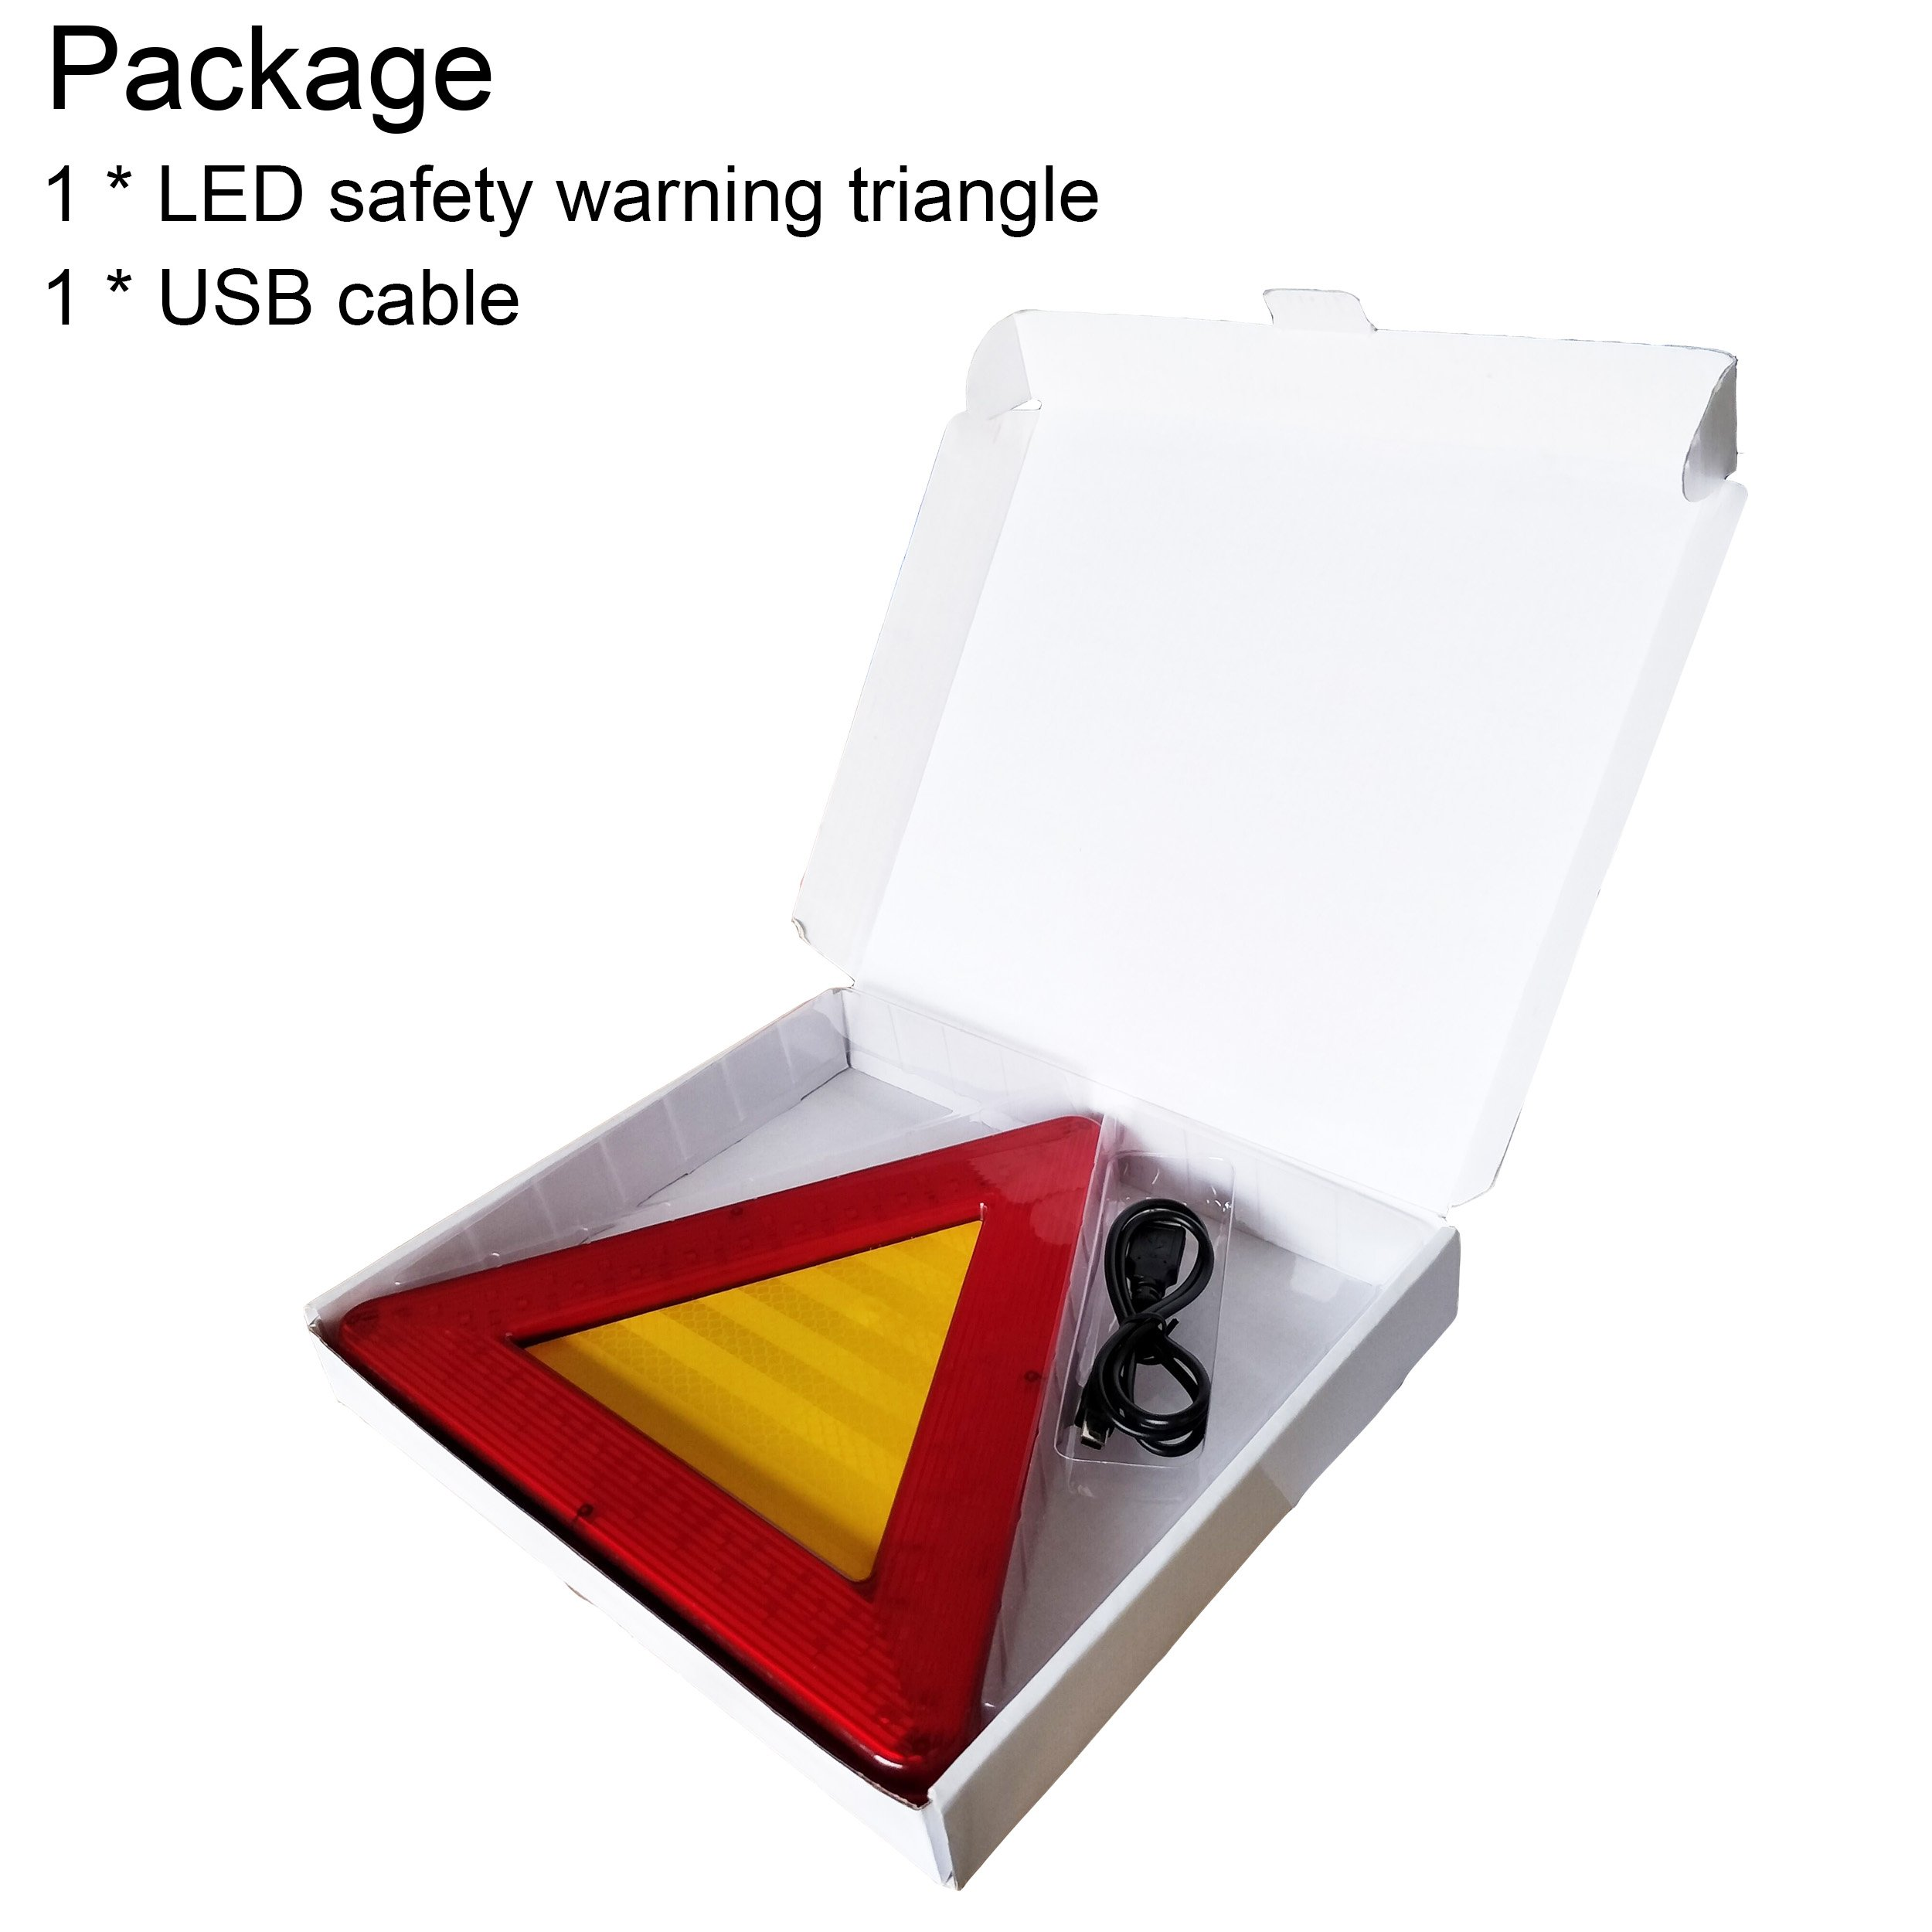 WELLHOME Red Safety Warning Triangular Reflective Kit Triangle Reflector Safety Sign for Car Truck Van Trailers Caravans Lorry Bus etc,9.05 Inch Two Modes - 2 Pack by WELLHOME (Image #2)